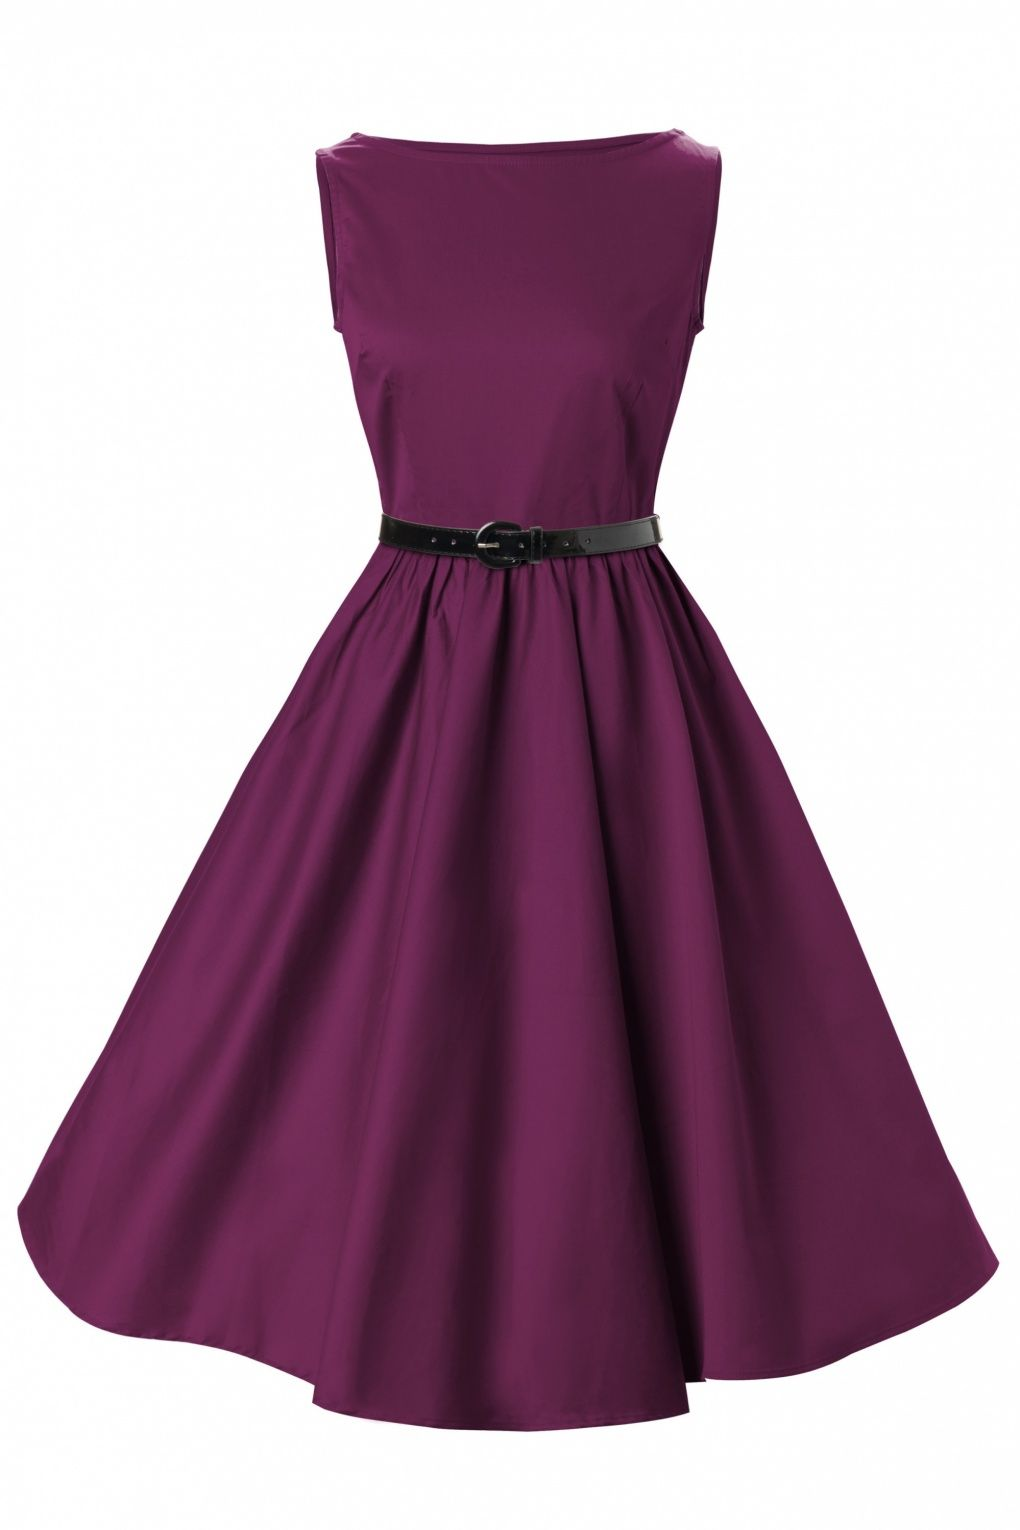 1950\'s Audrey Hepburn style swing party rockabilly evening P ...